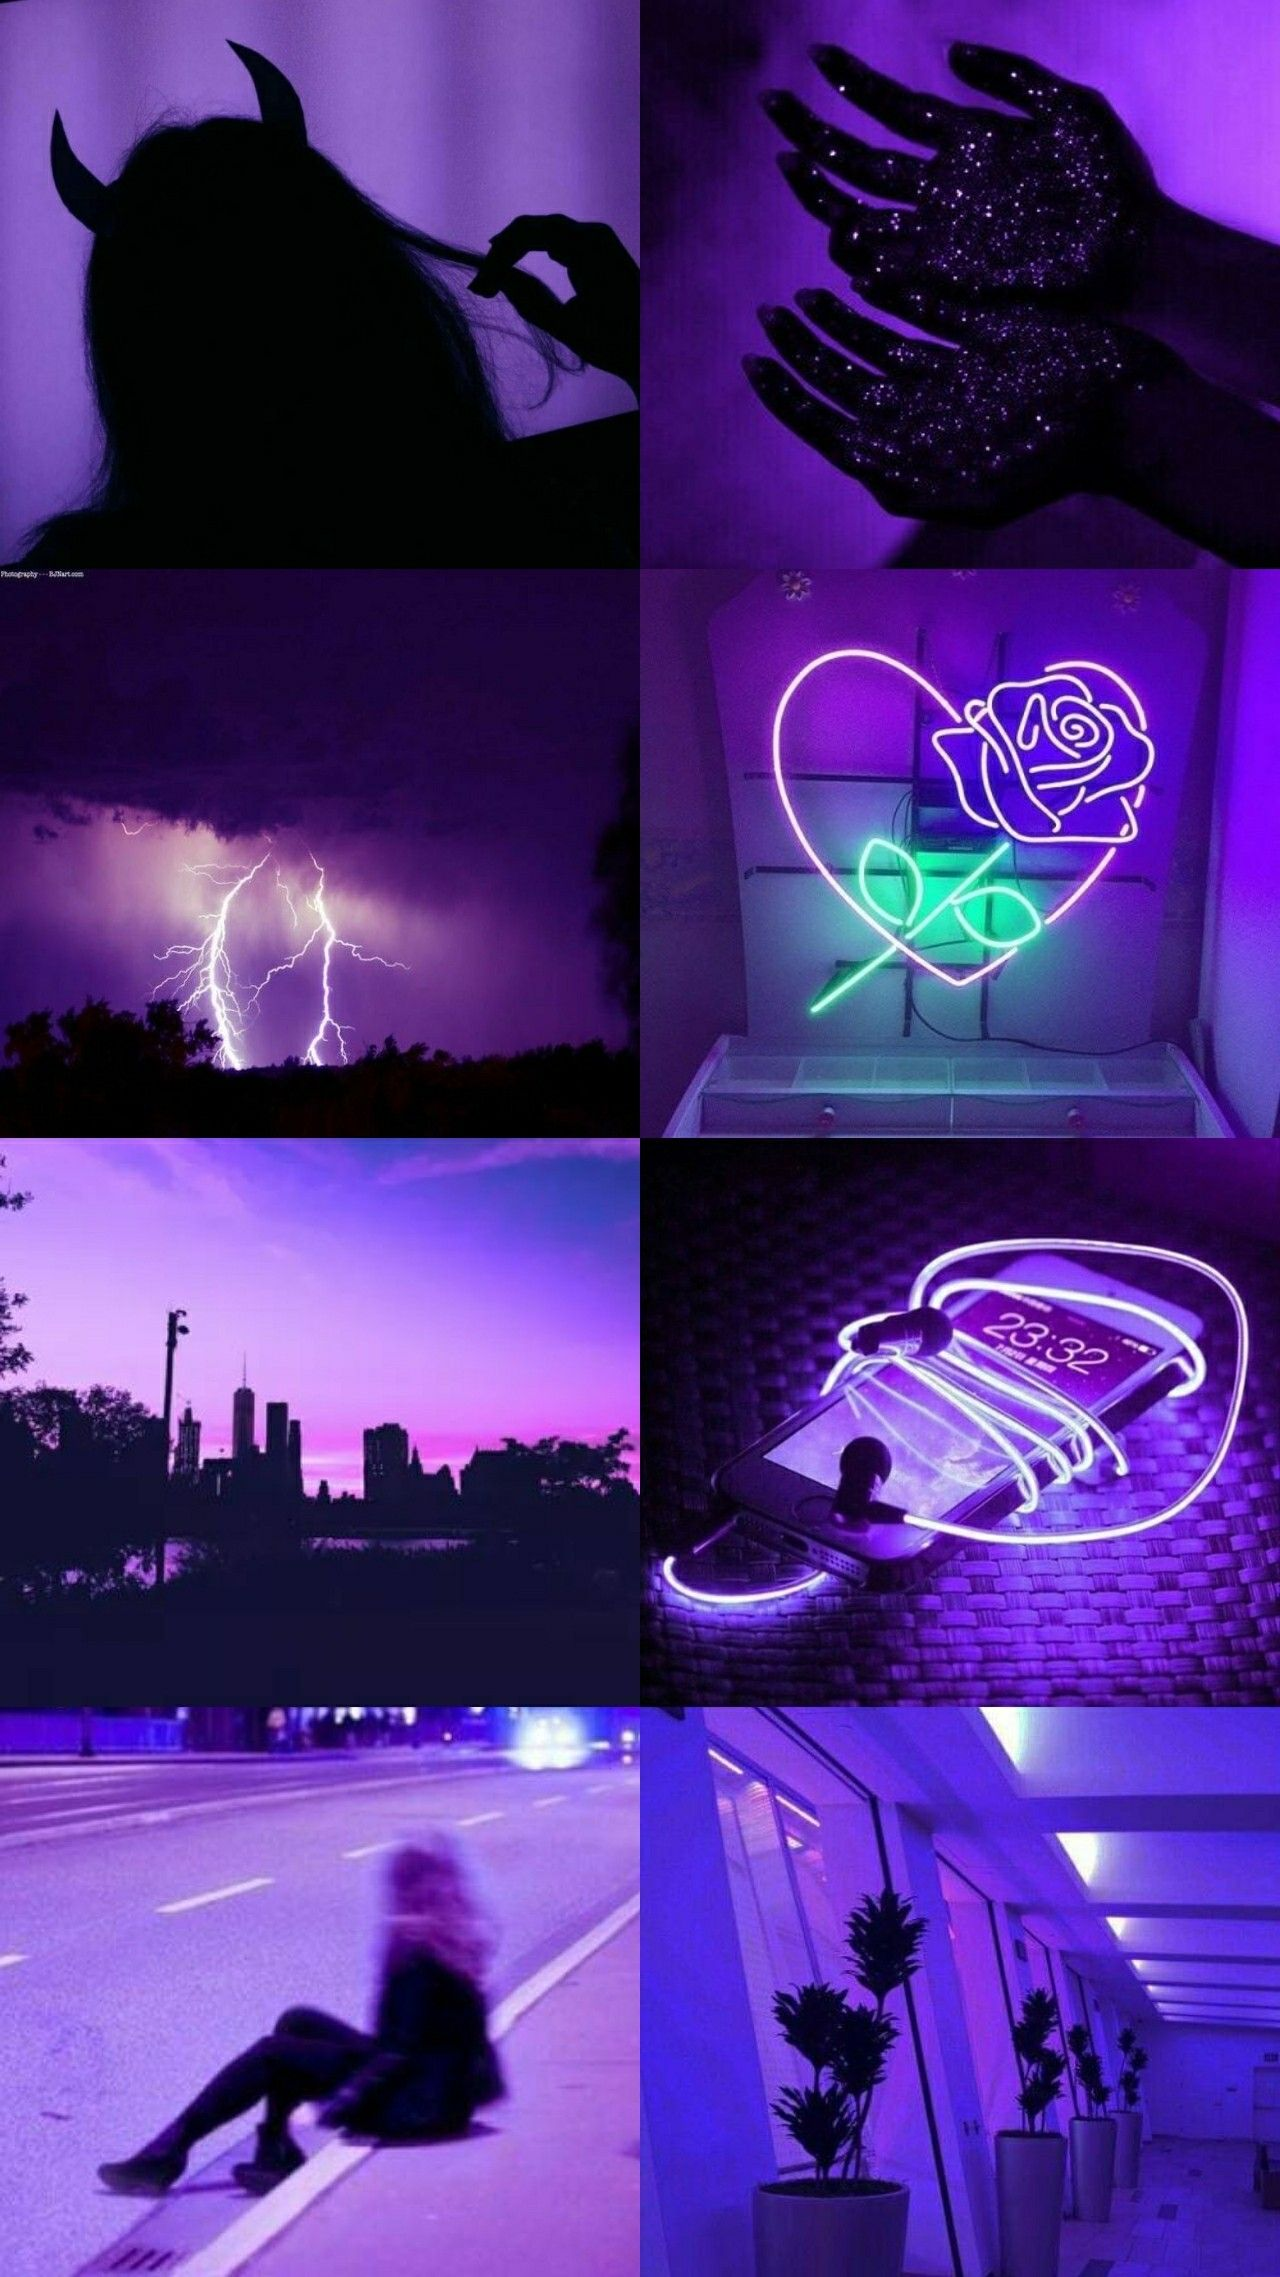 Wallpaper Aesthetic Dark Purple (With images) Dark